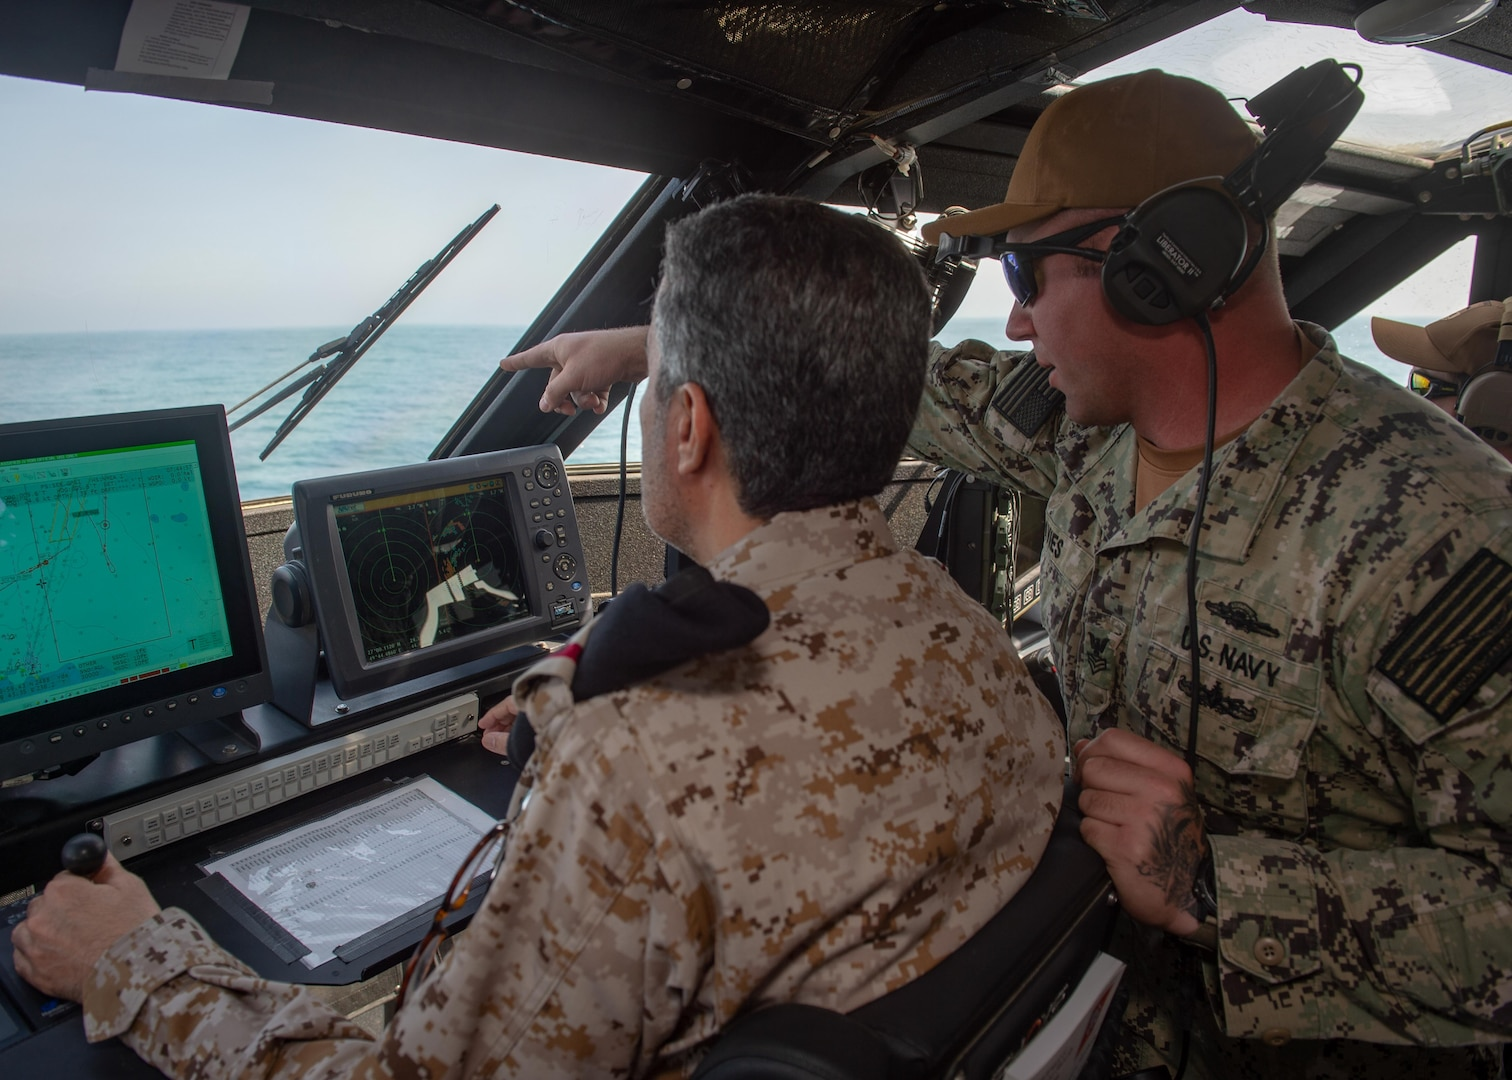 JUBAIL, Kingdom of Saudi Arabia 200223-N-JO908-1073 Gunner's Mate 1st Class Andrew Davies, assigned to Commander Task Force 56, guides Rear Adm. Majed Haz'z Al-Kahtani, Deputy Commander, Royal Saudi Naval Forces (RSNF) Eastern Fleet, on how to operate a Mark VI patrol boat during an underway as part of exercise Nautical Defender 20 in Jubail, Kingdom of Saudi Arabia Feb. 23. ND is a bilateral maritime exercise between the U.S. Navy and the RSNF designed to build and sustain warfighting capabilities, support long term regional security and enhance military-to-military interoperability with the U.S. and Kingdom of Saudi Arabia. (U.S. Navy photo by Mass Communication Specialist 1st Class Kory Alsberry)